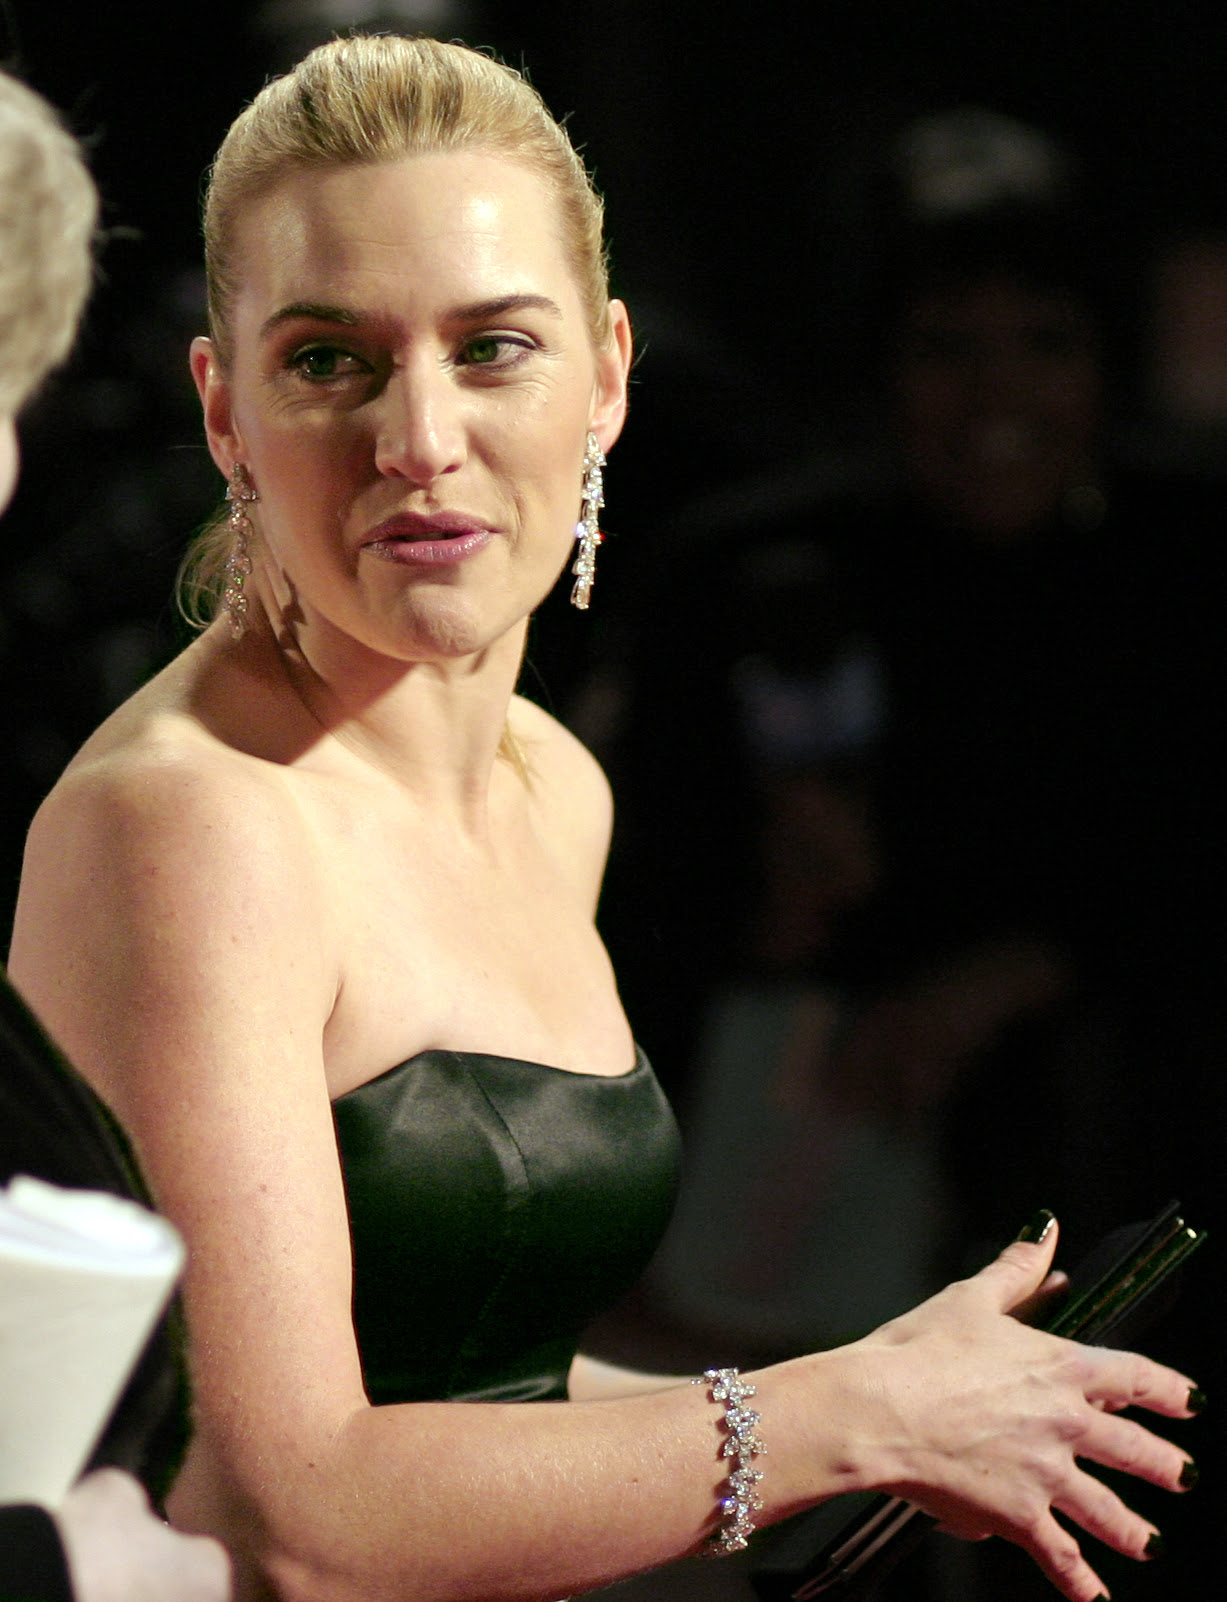 Image:Kate Winslet at the BAFTAs 2007.jpg